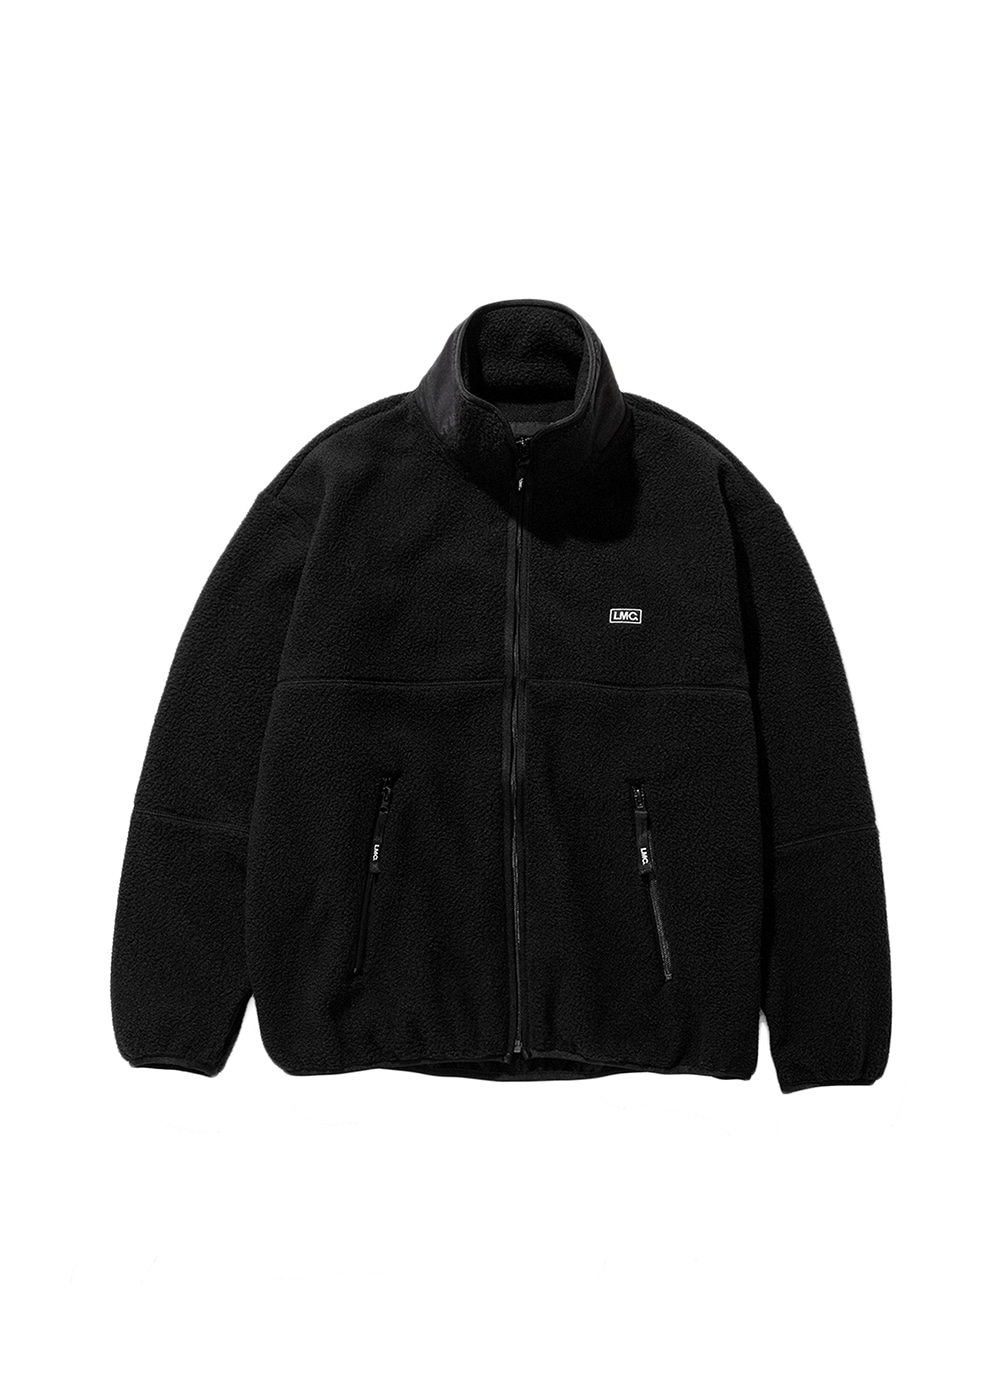 LMC S-BOX FLEECE JACKET black